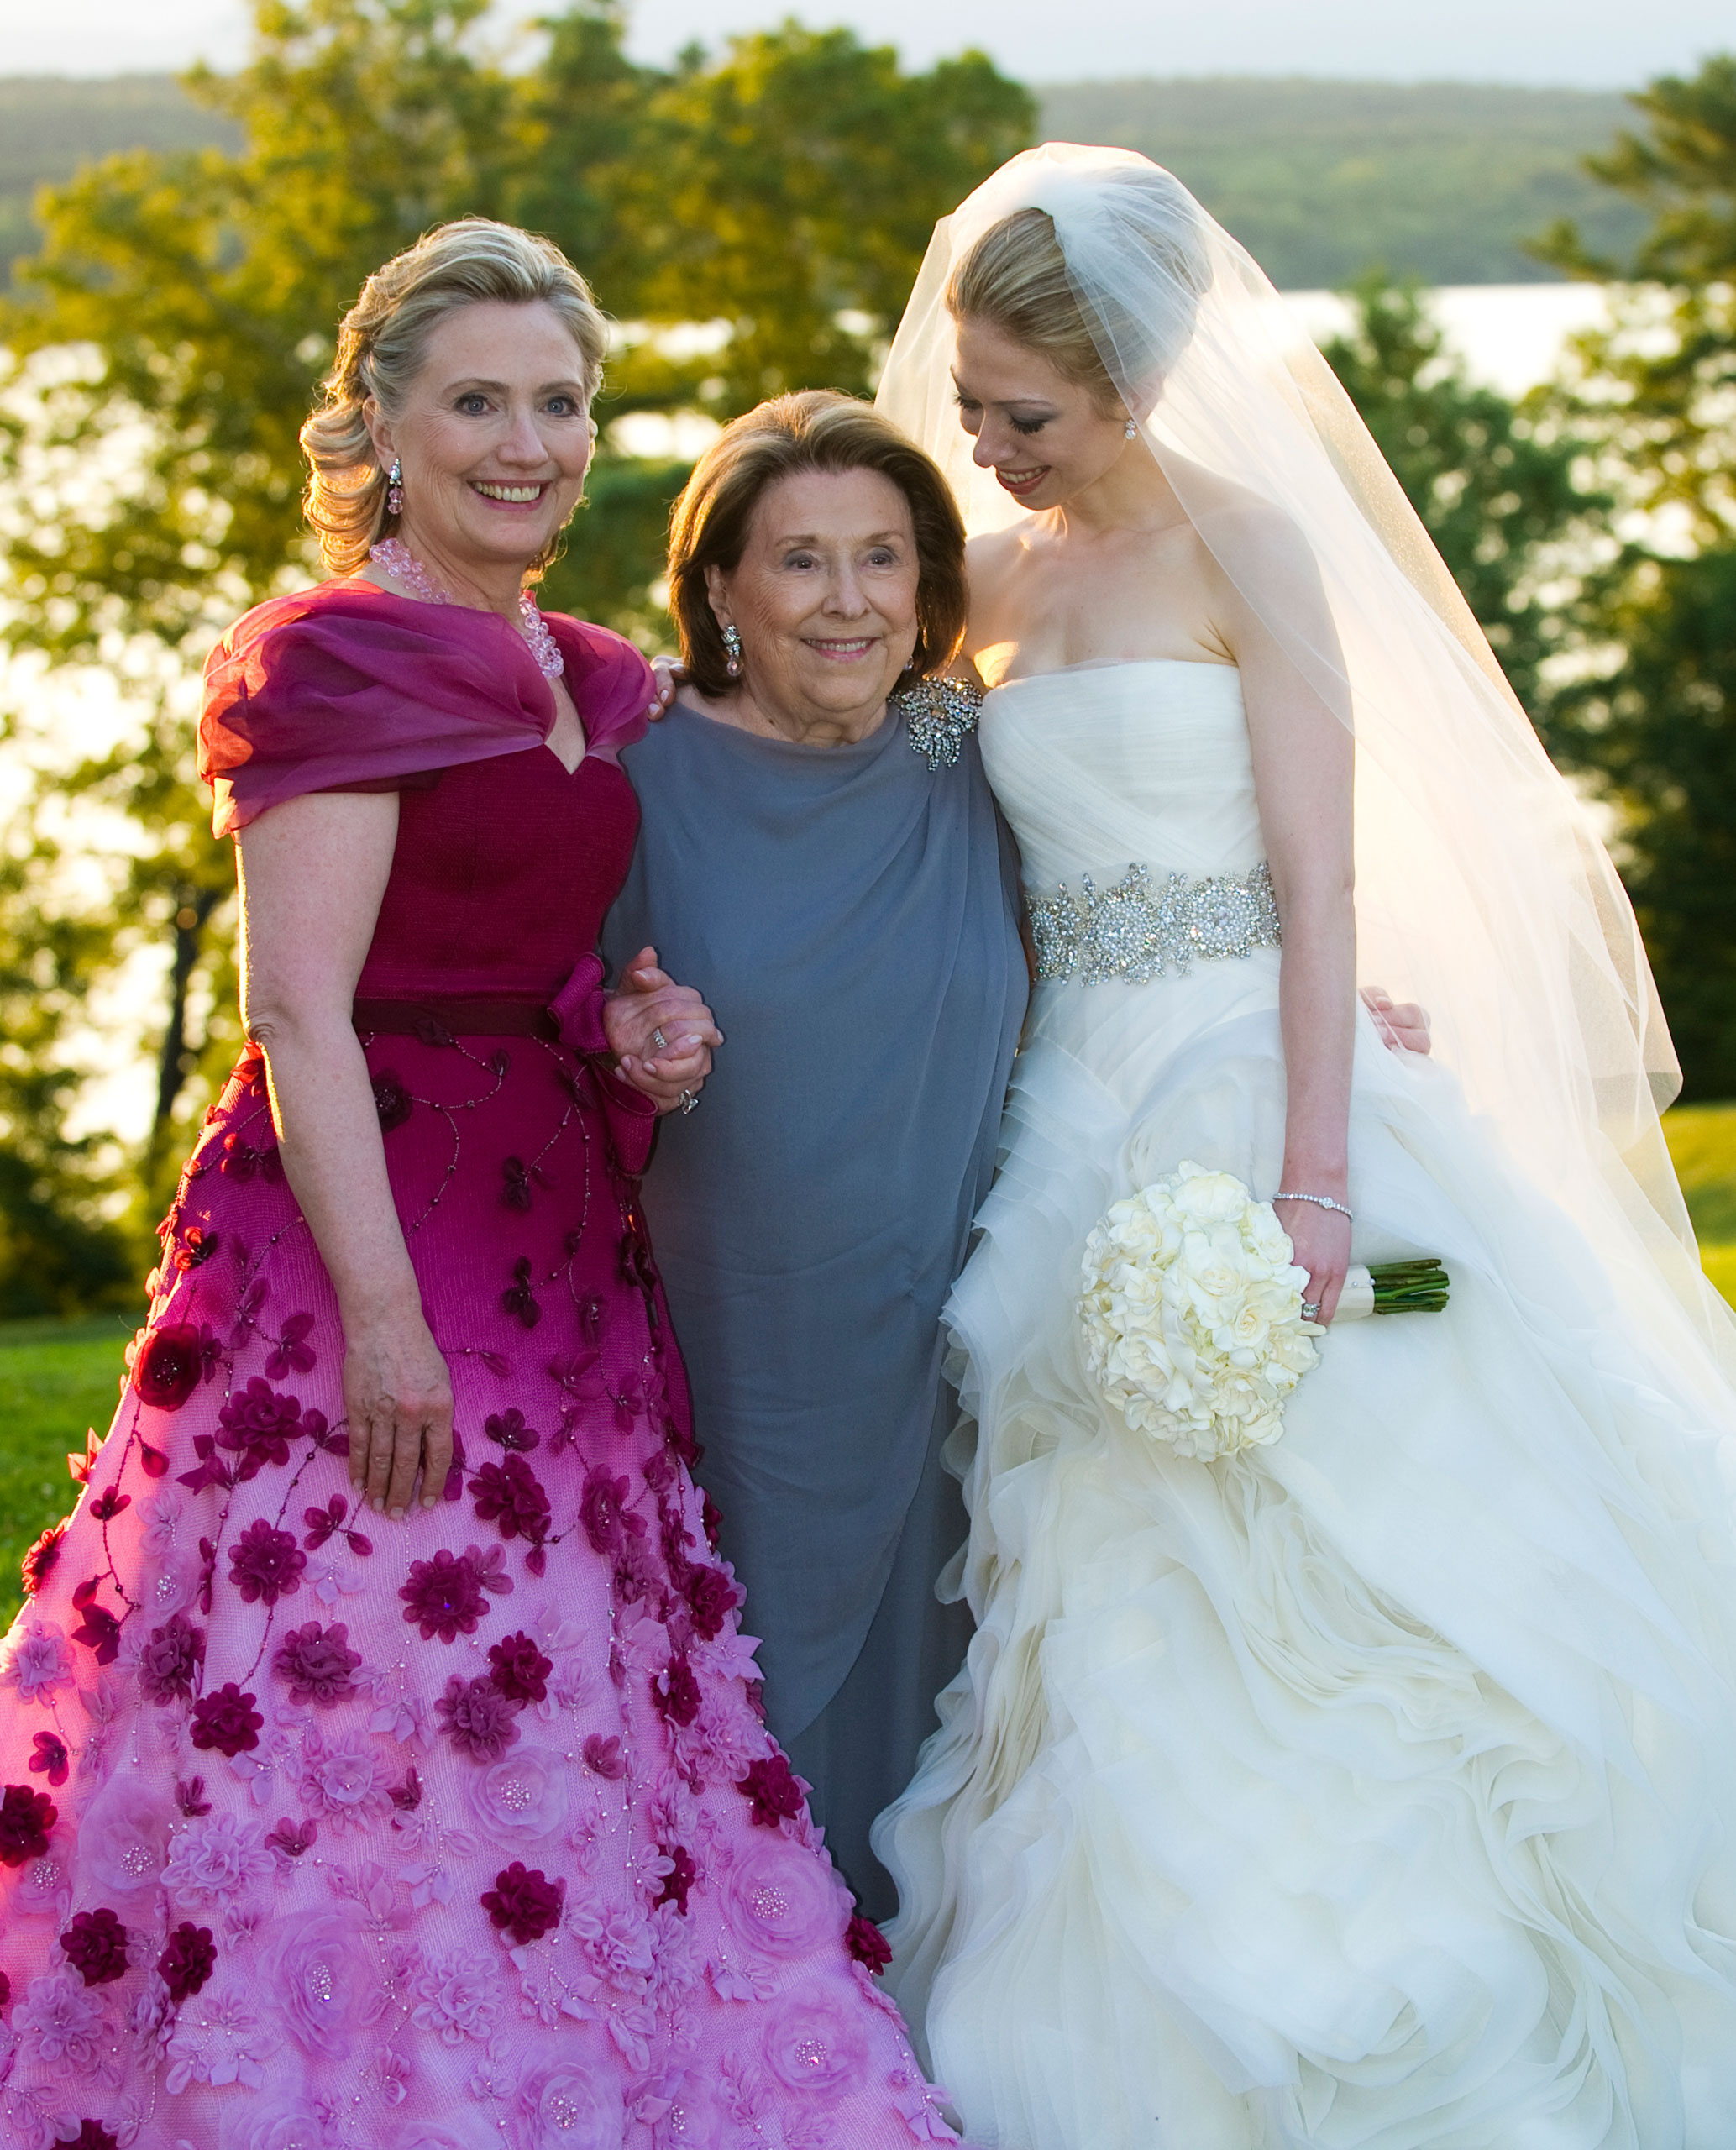 From left to right: Secretary of State Hillary Clinton, Dorothy Rodham and Chelsea Clinton pose for formal photos after the Chelsea's wedding at Astor Court at Rhinebeck, N.Y., July 31, 2010.